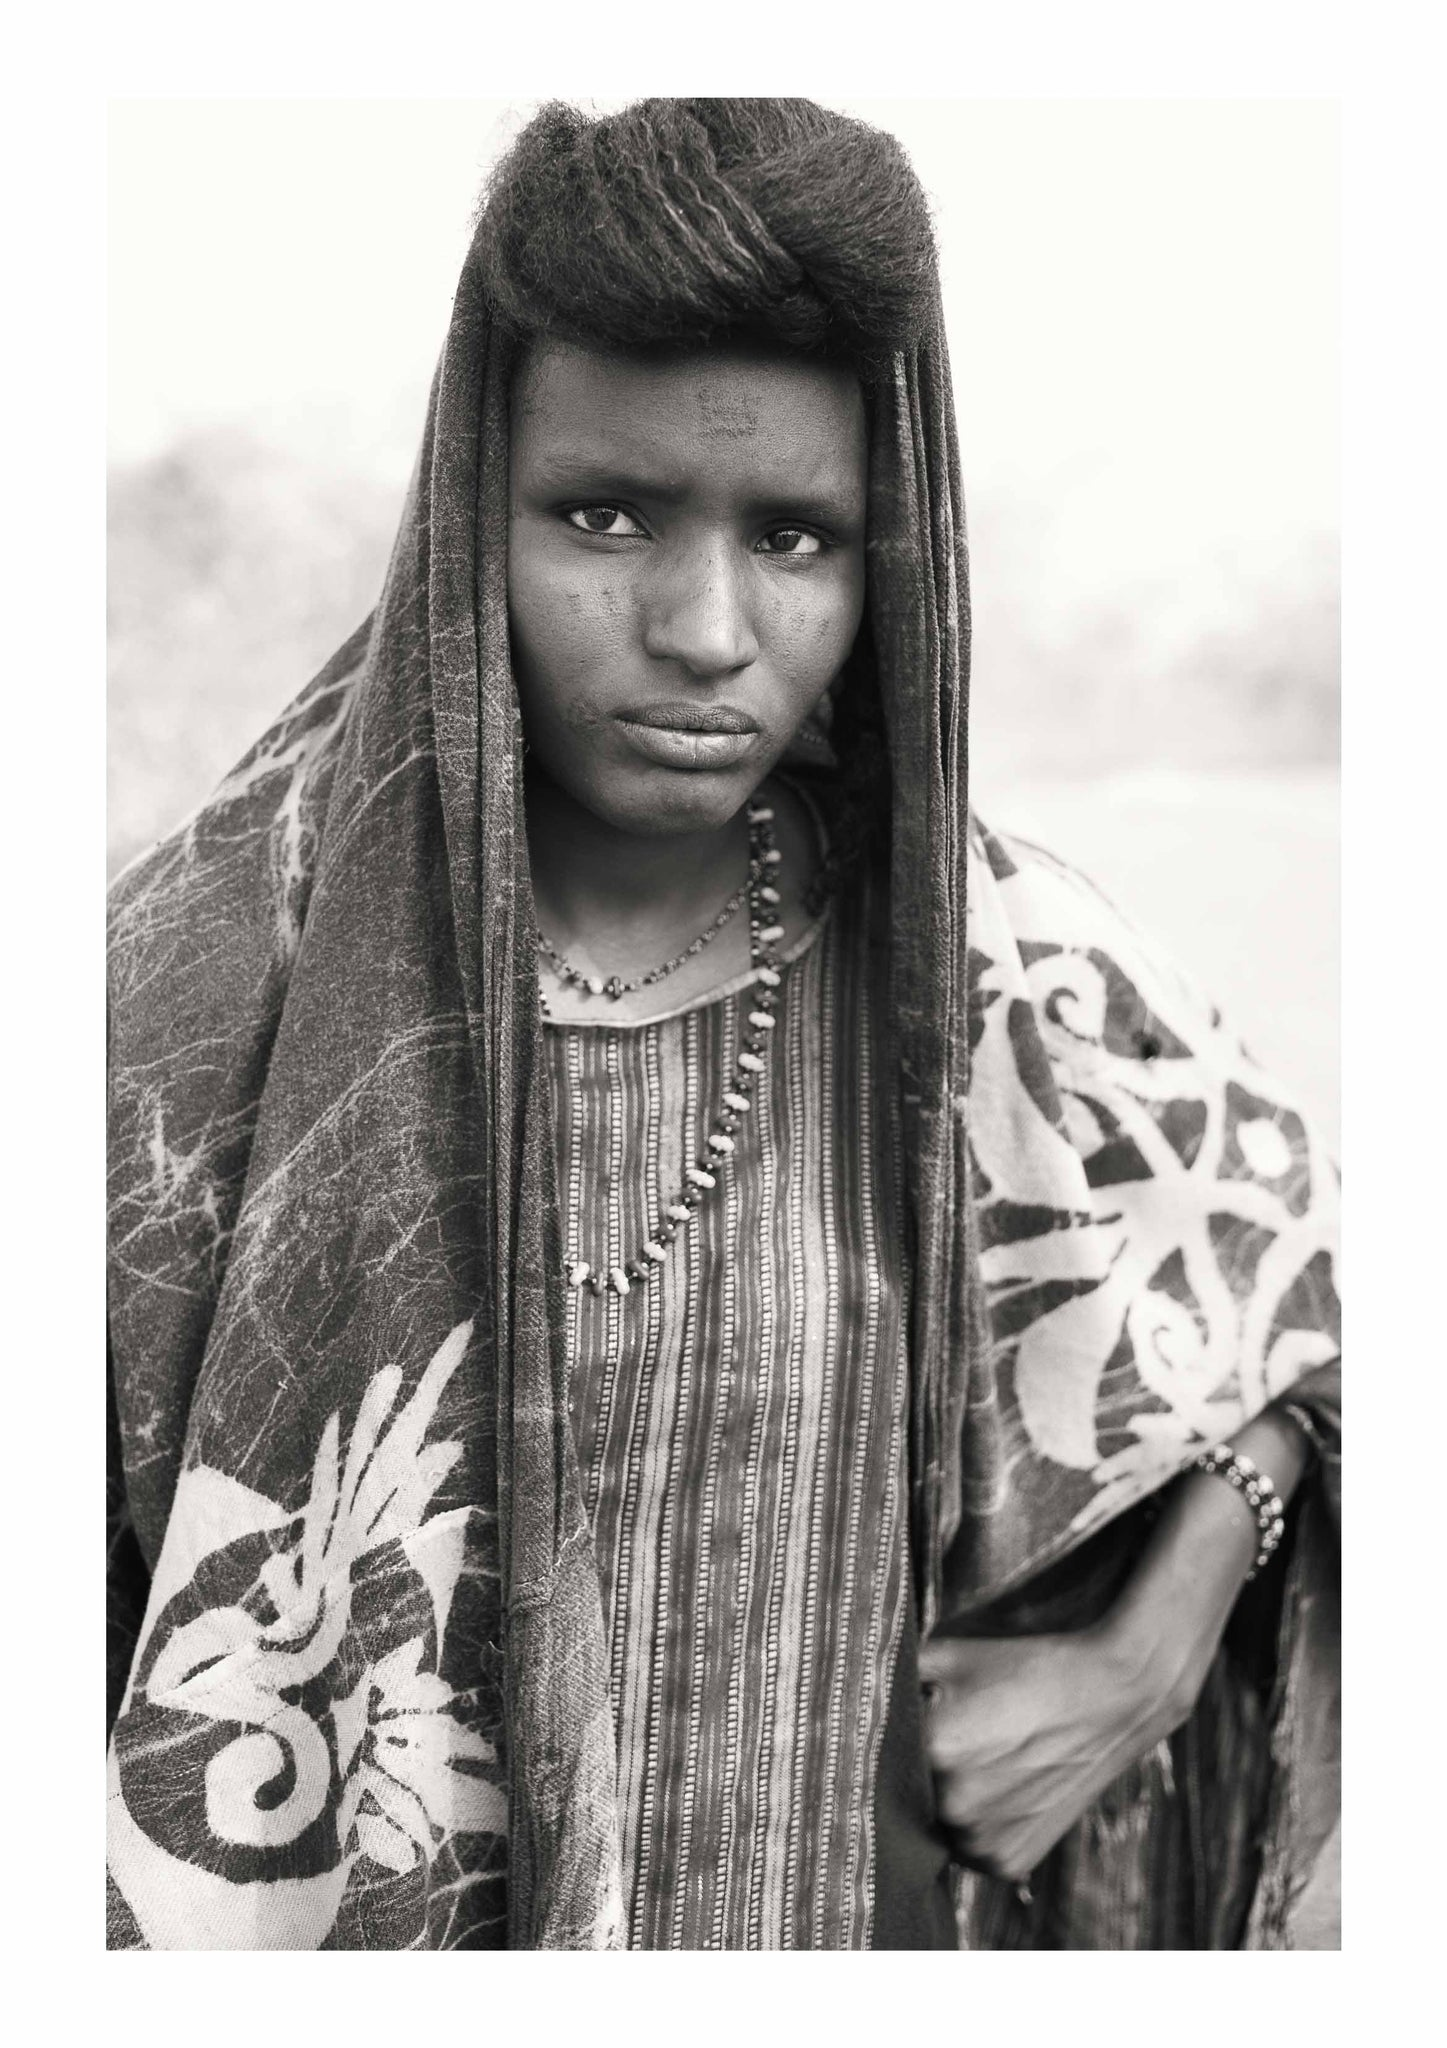 Nomads of Niger I